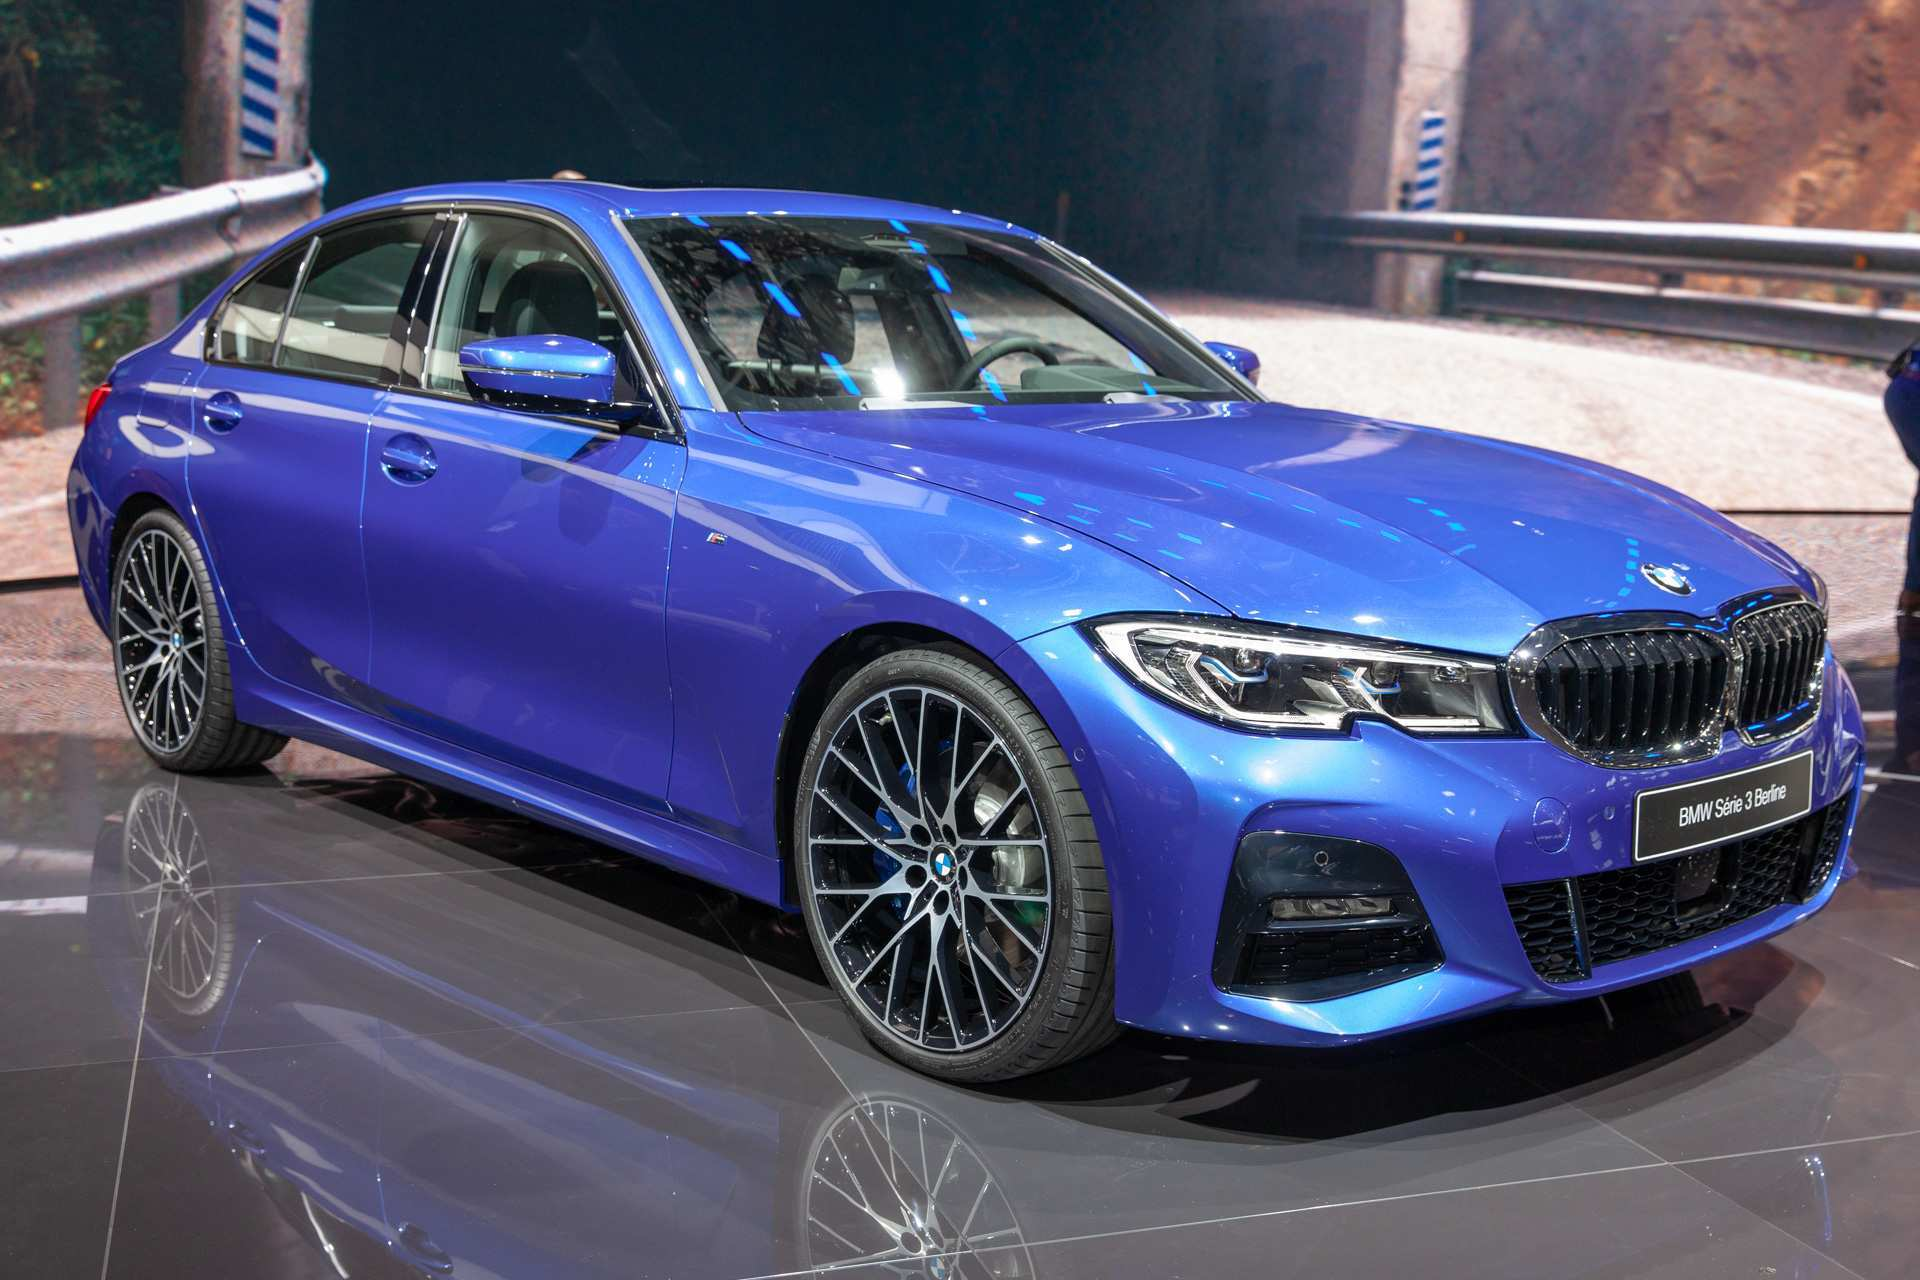 87 A 2019 BMW 3 Series Edrive Phev Prices